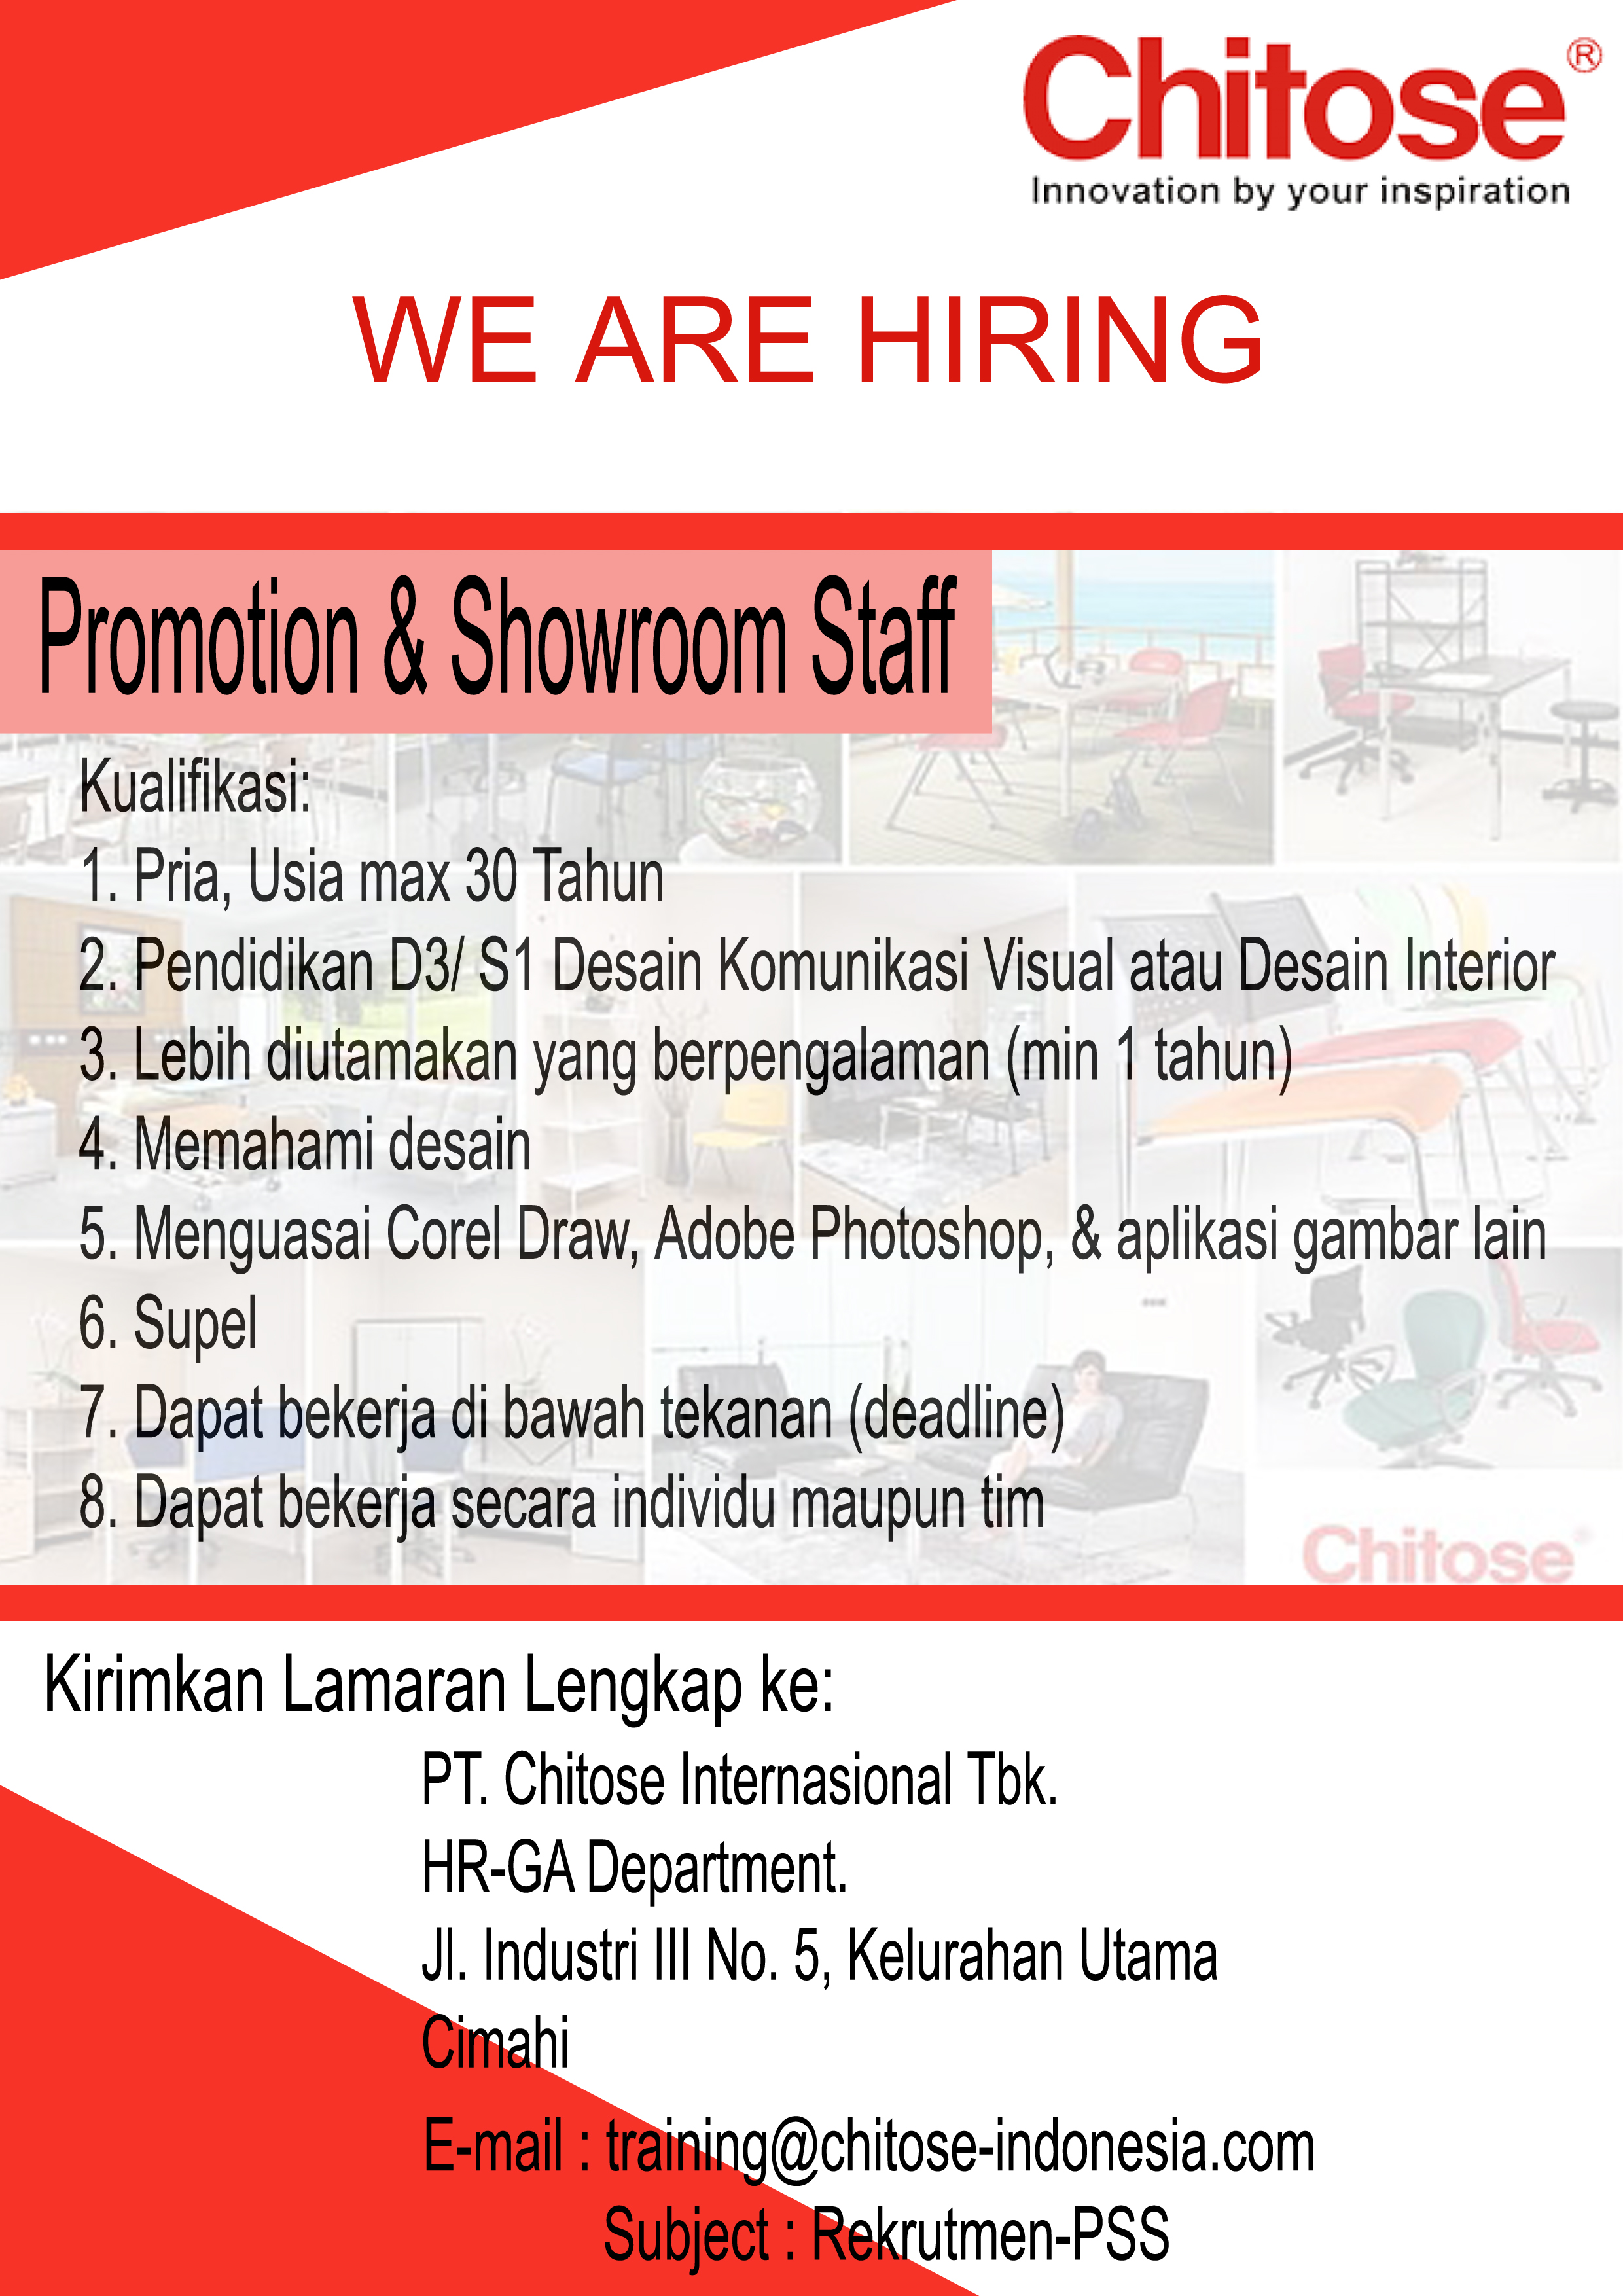 loker-promotion-showroom-staff.jpg